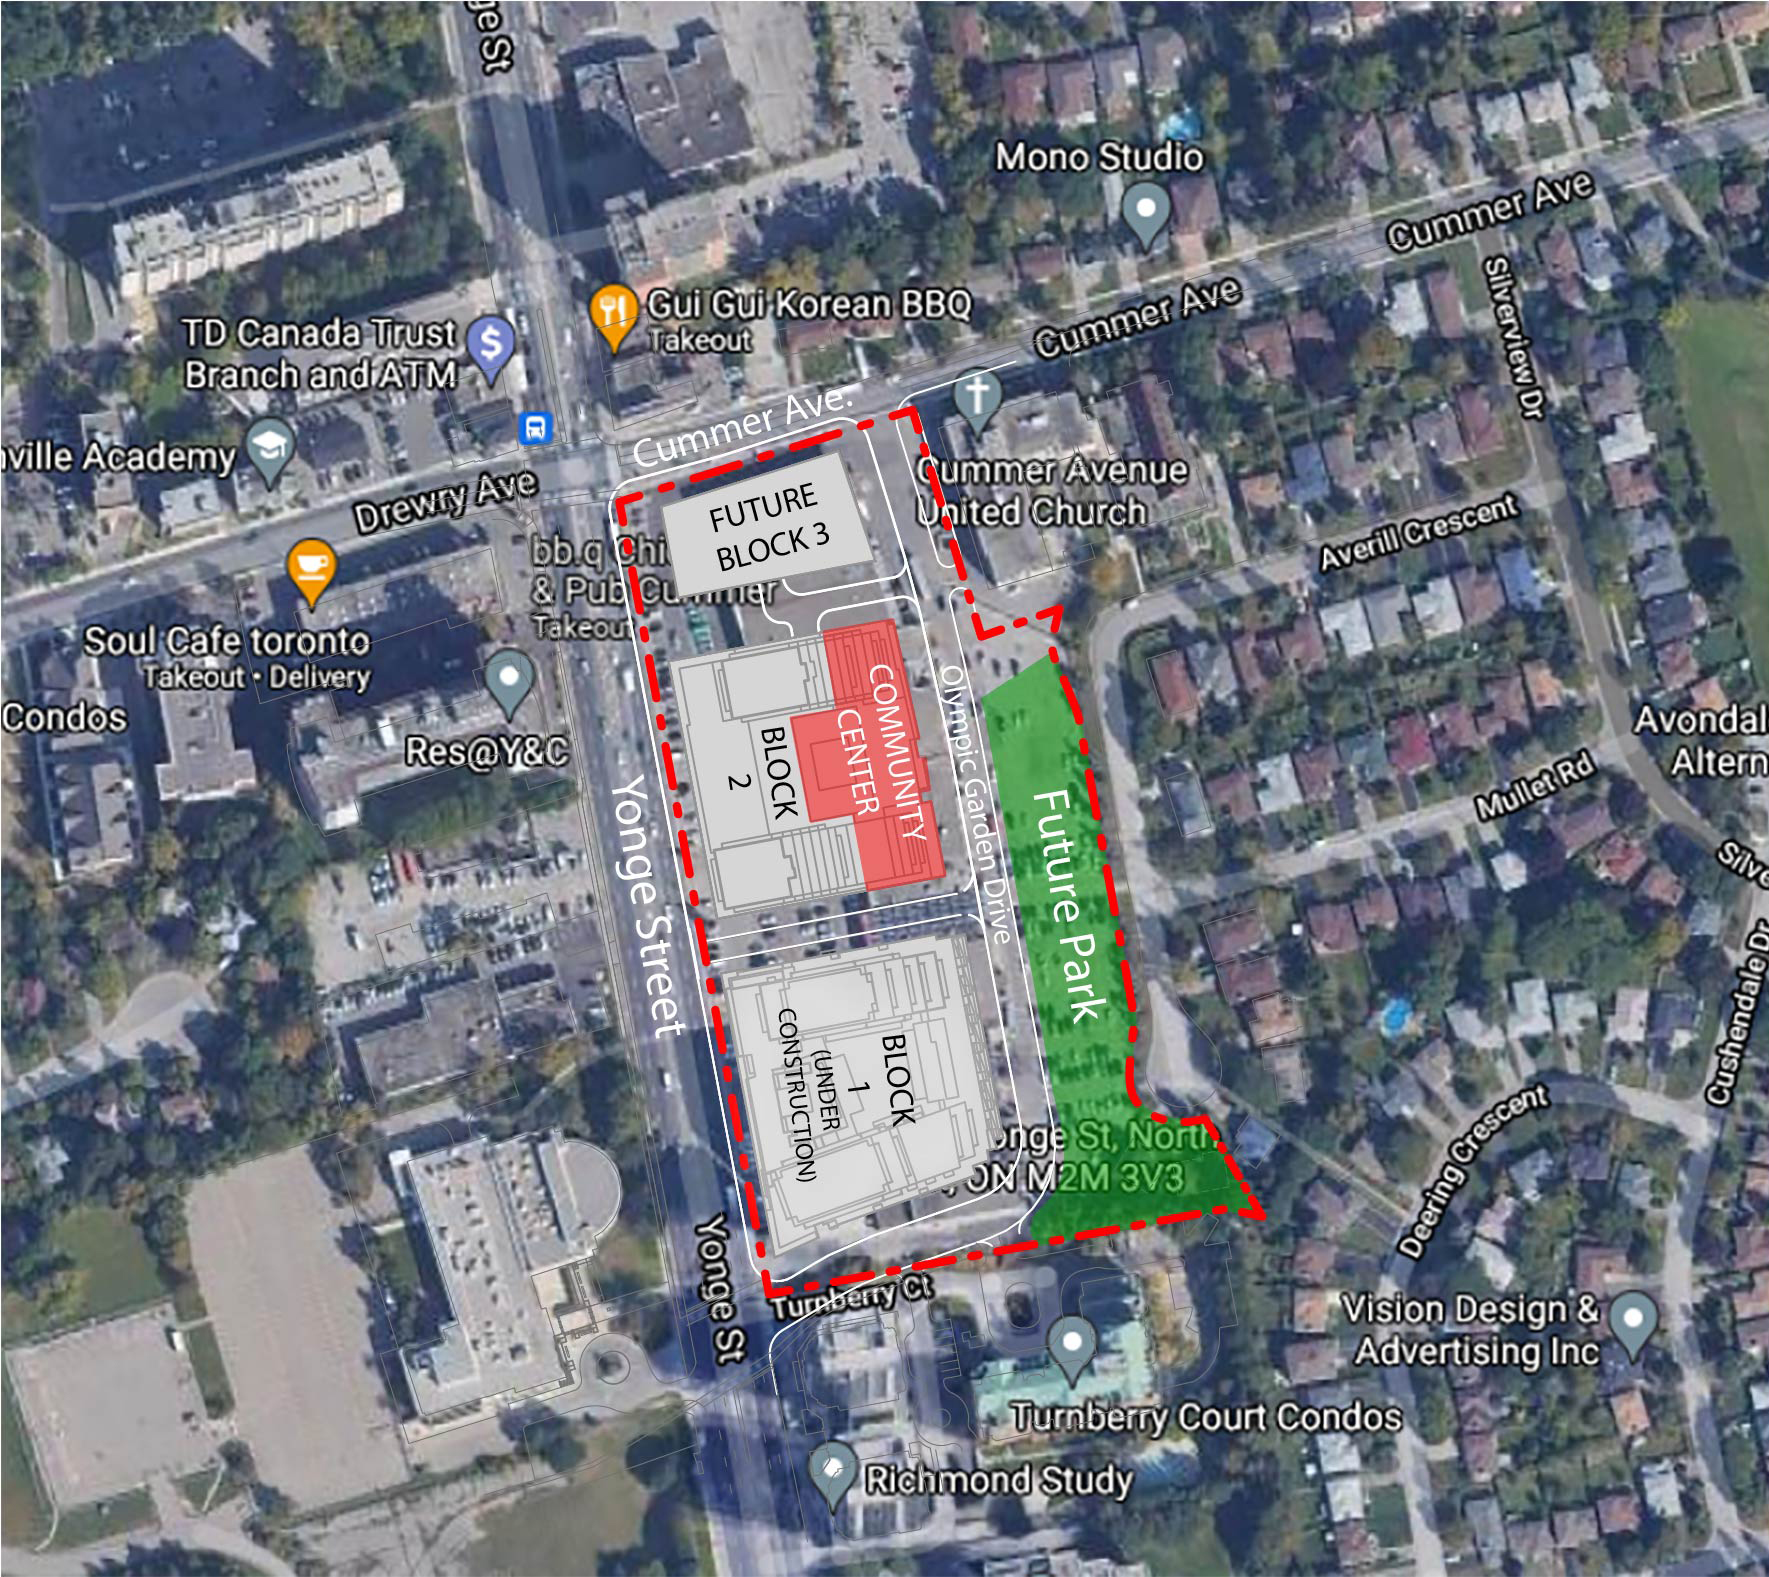 An aerial location map showing the location for the new the new park, shown in green. The new park will be located east of Yonge Street and south of Cummer Avenue on a new street named Olympic Garden Drive. The development site is outlined in red and includes a community centre, shown in red.